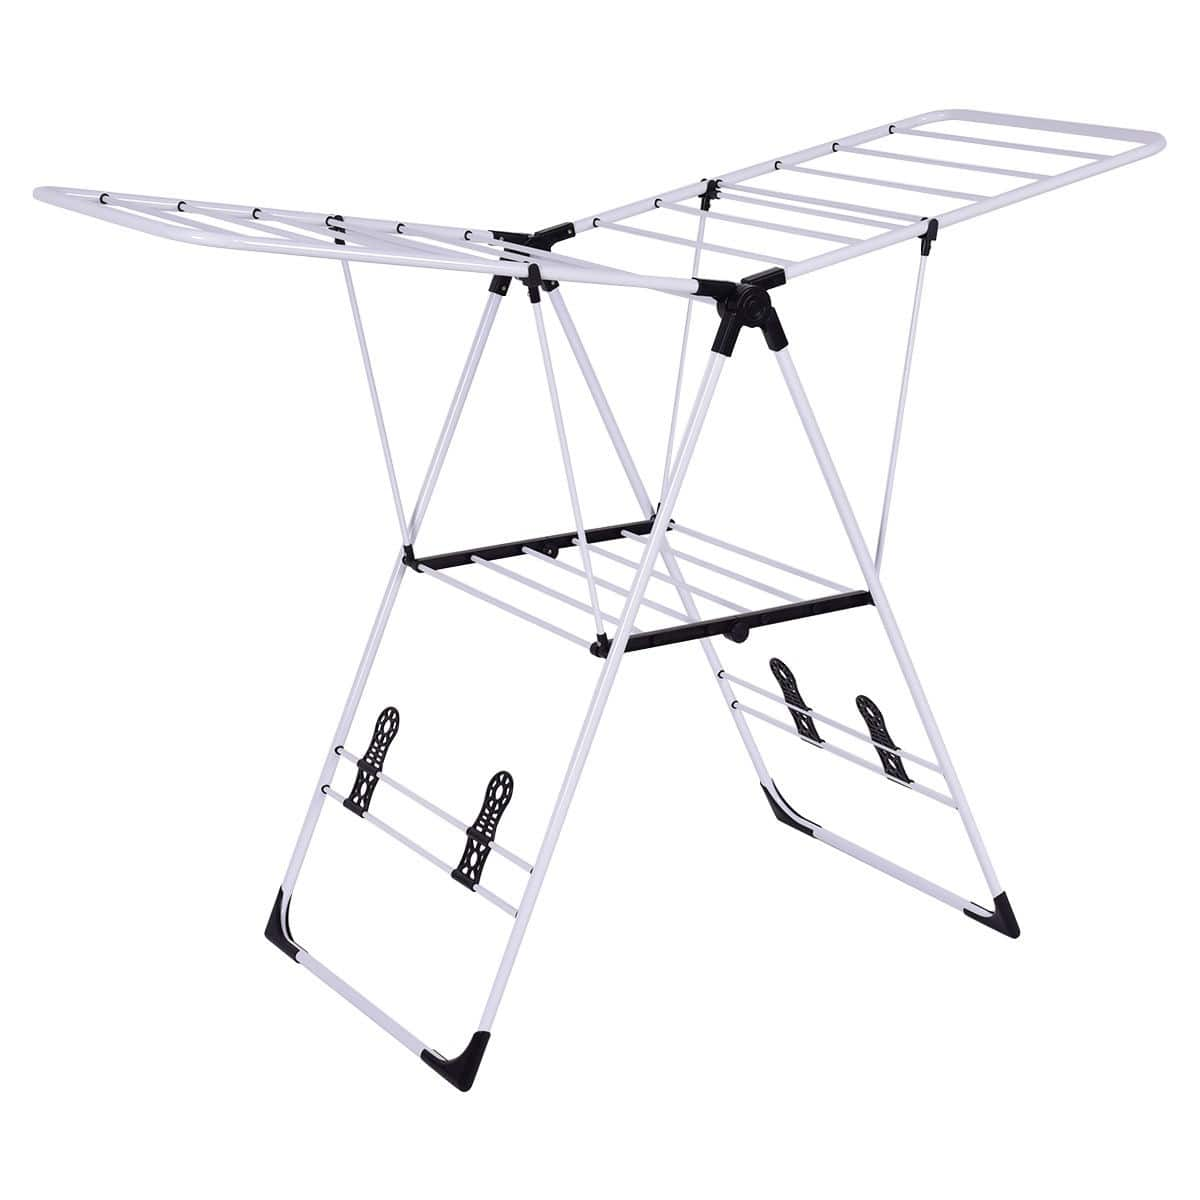 Merveilleux Costway White Portable Folding Laundry Clothes Drying Rack $26.95 + Free  Shipping